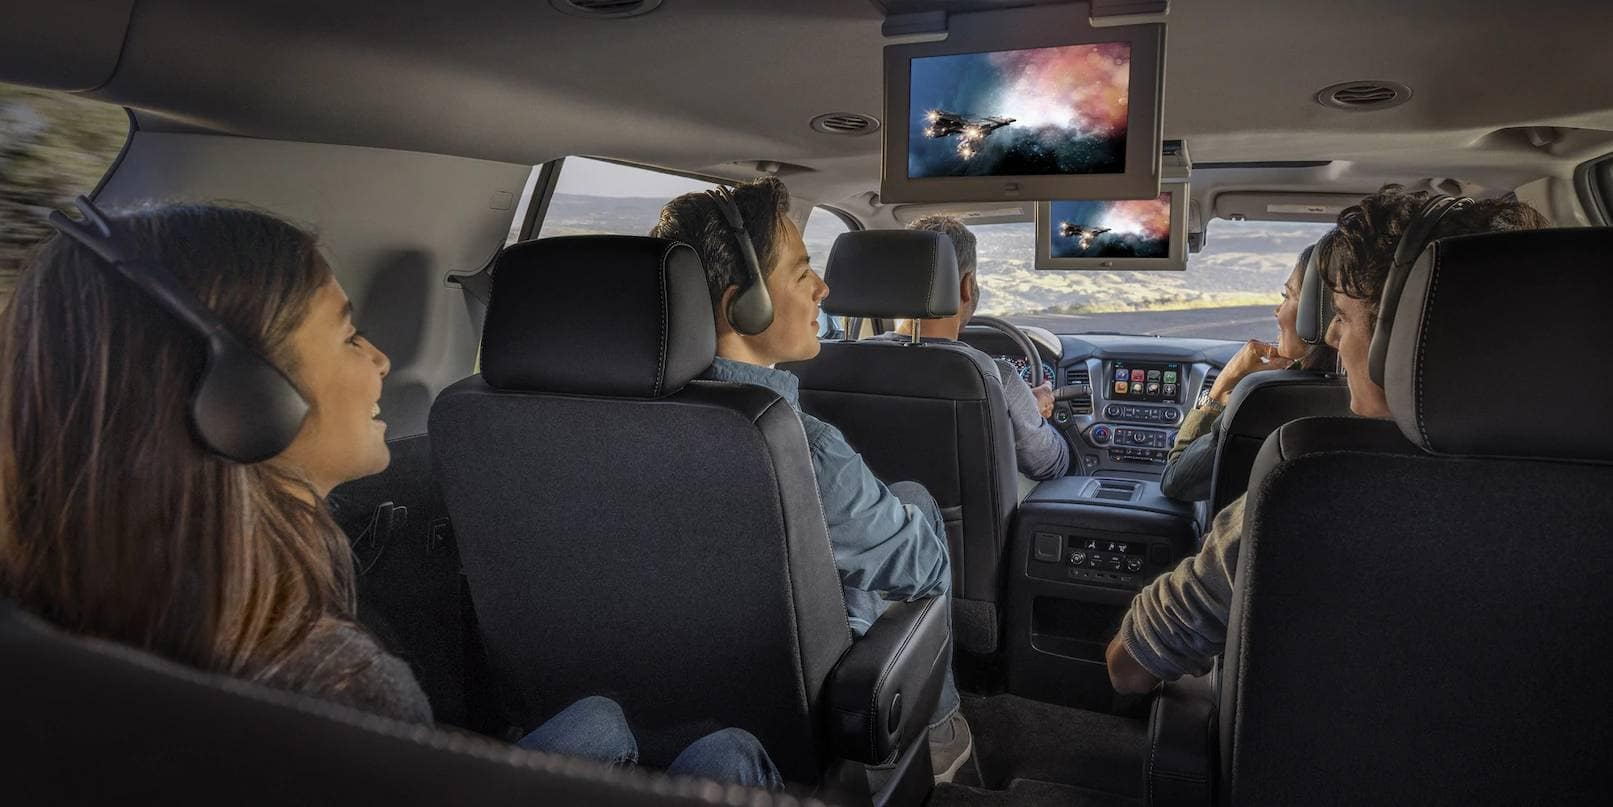 2019 Chevrolet Tahoe Interior Watching a Movie